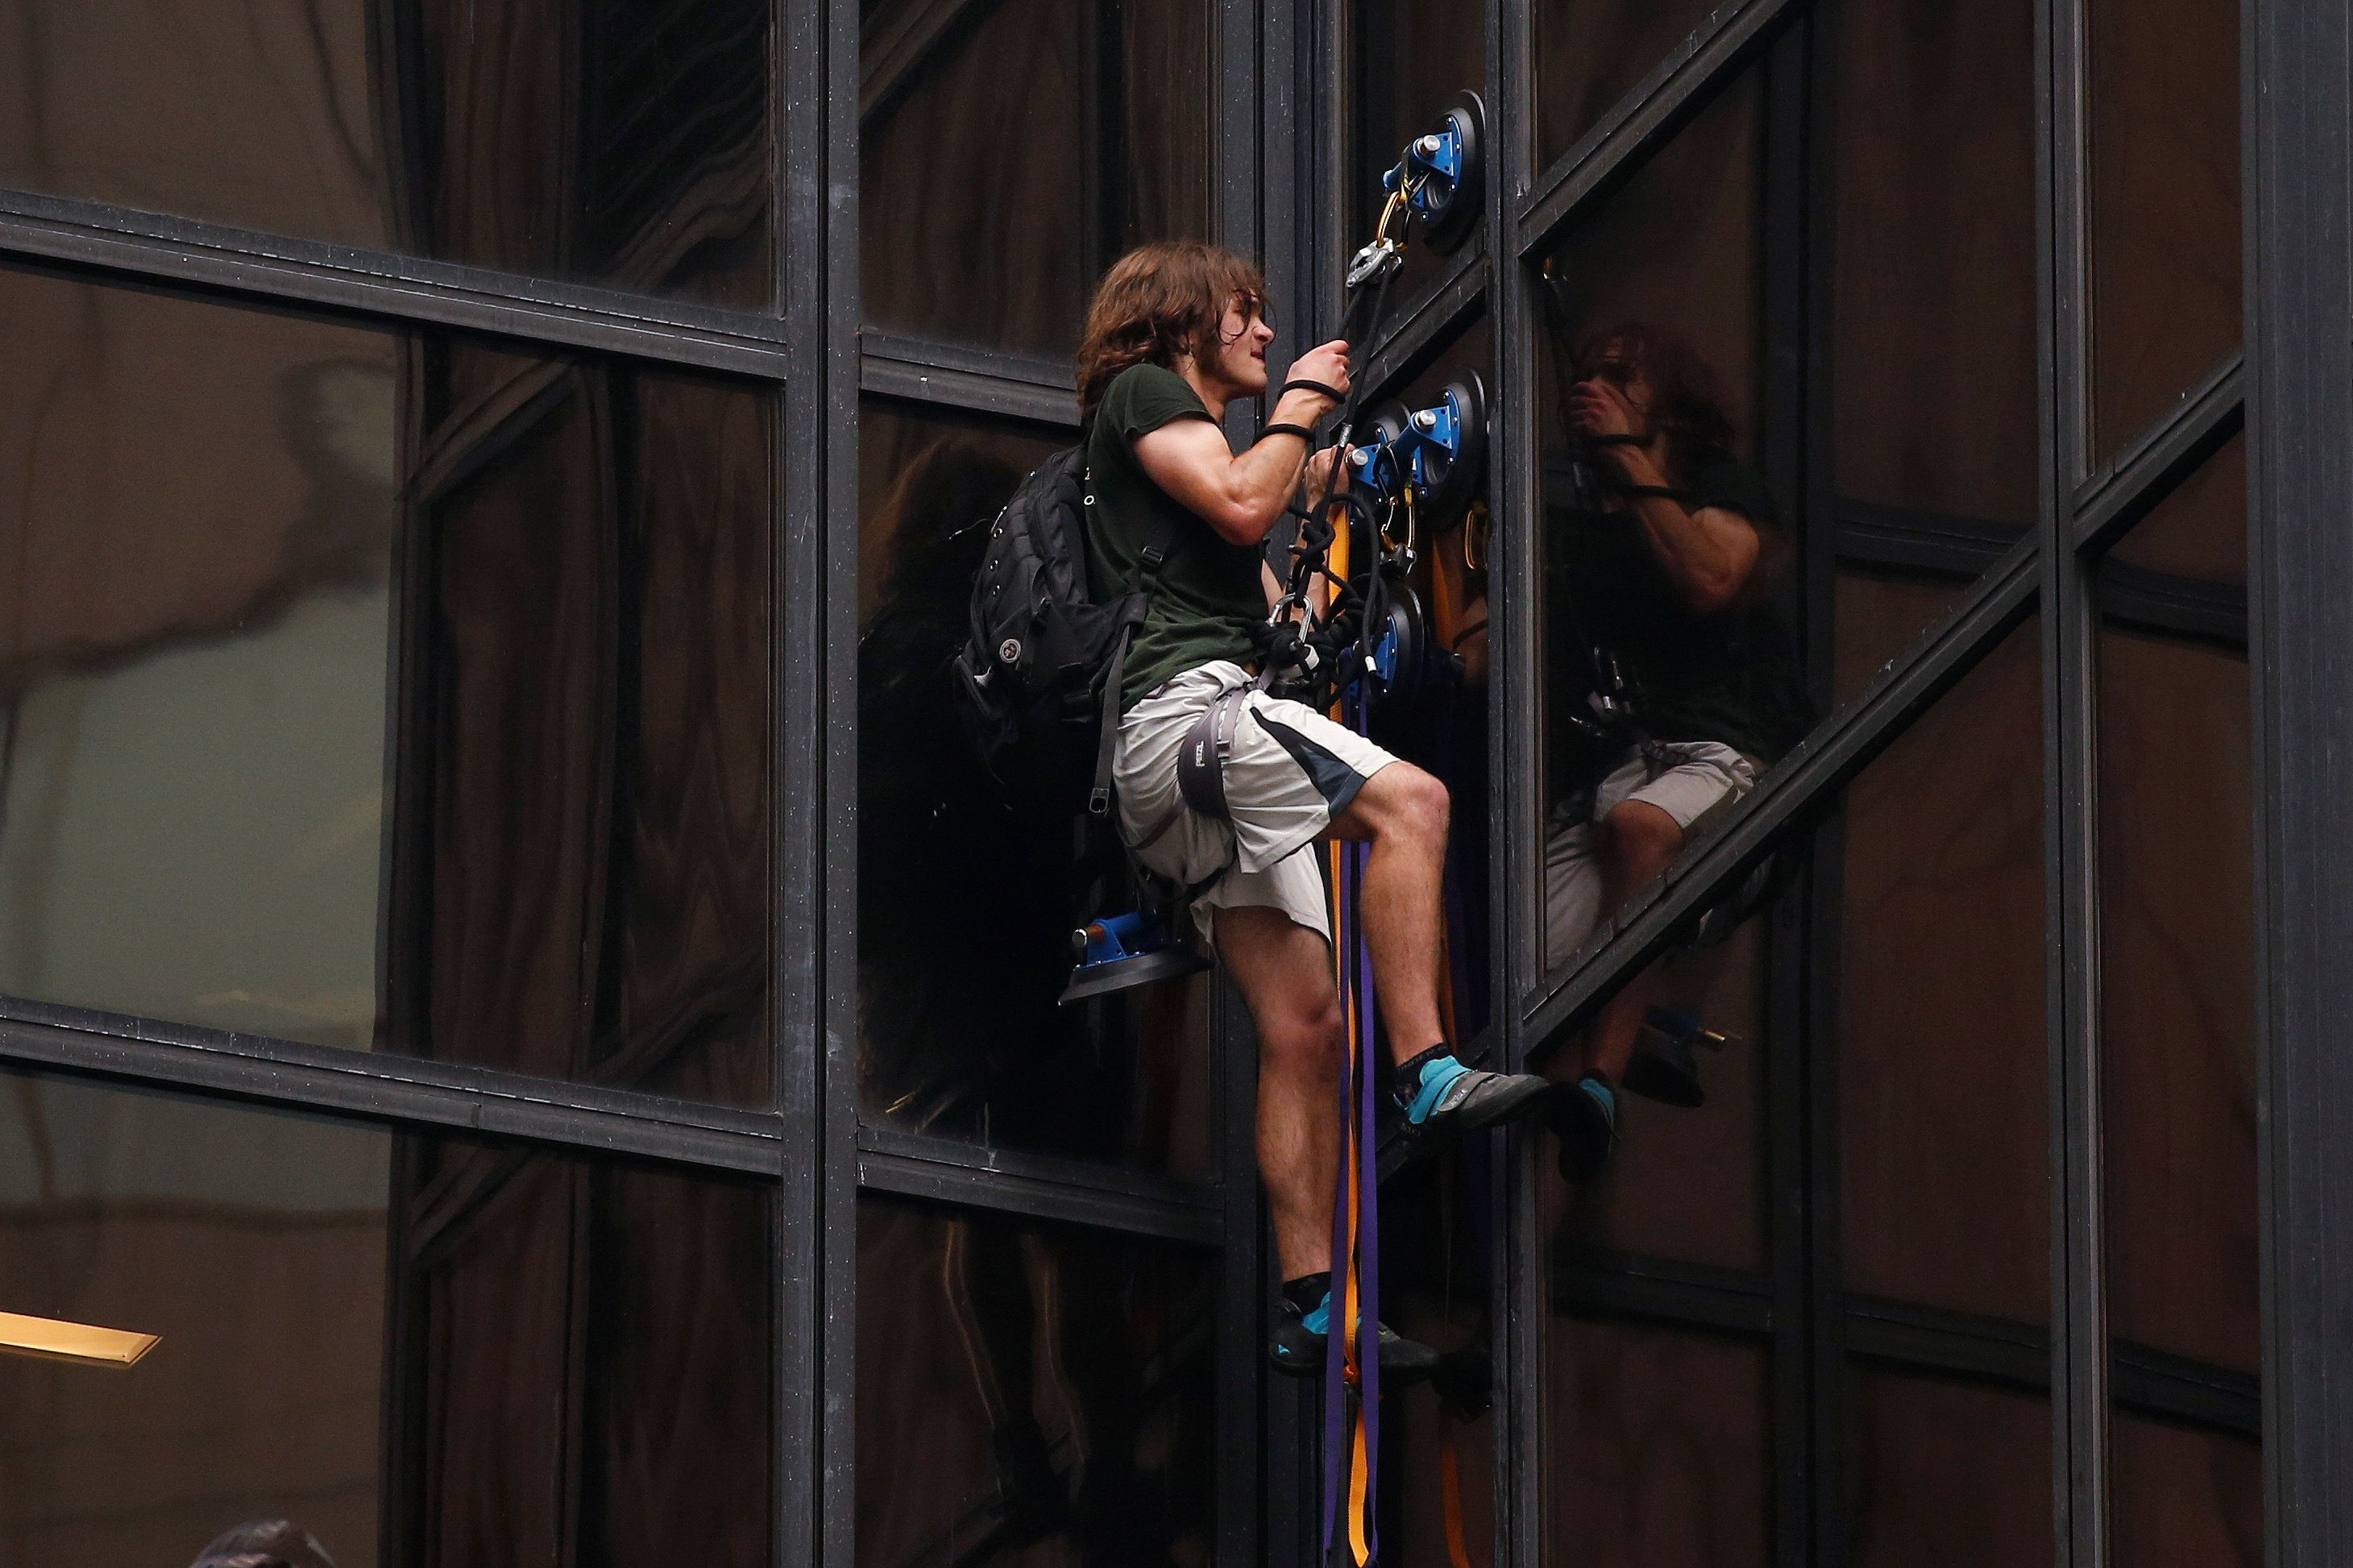 A Lot Of People Are Making Fun Of The Trump Tower Climber On